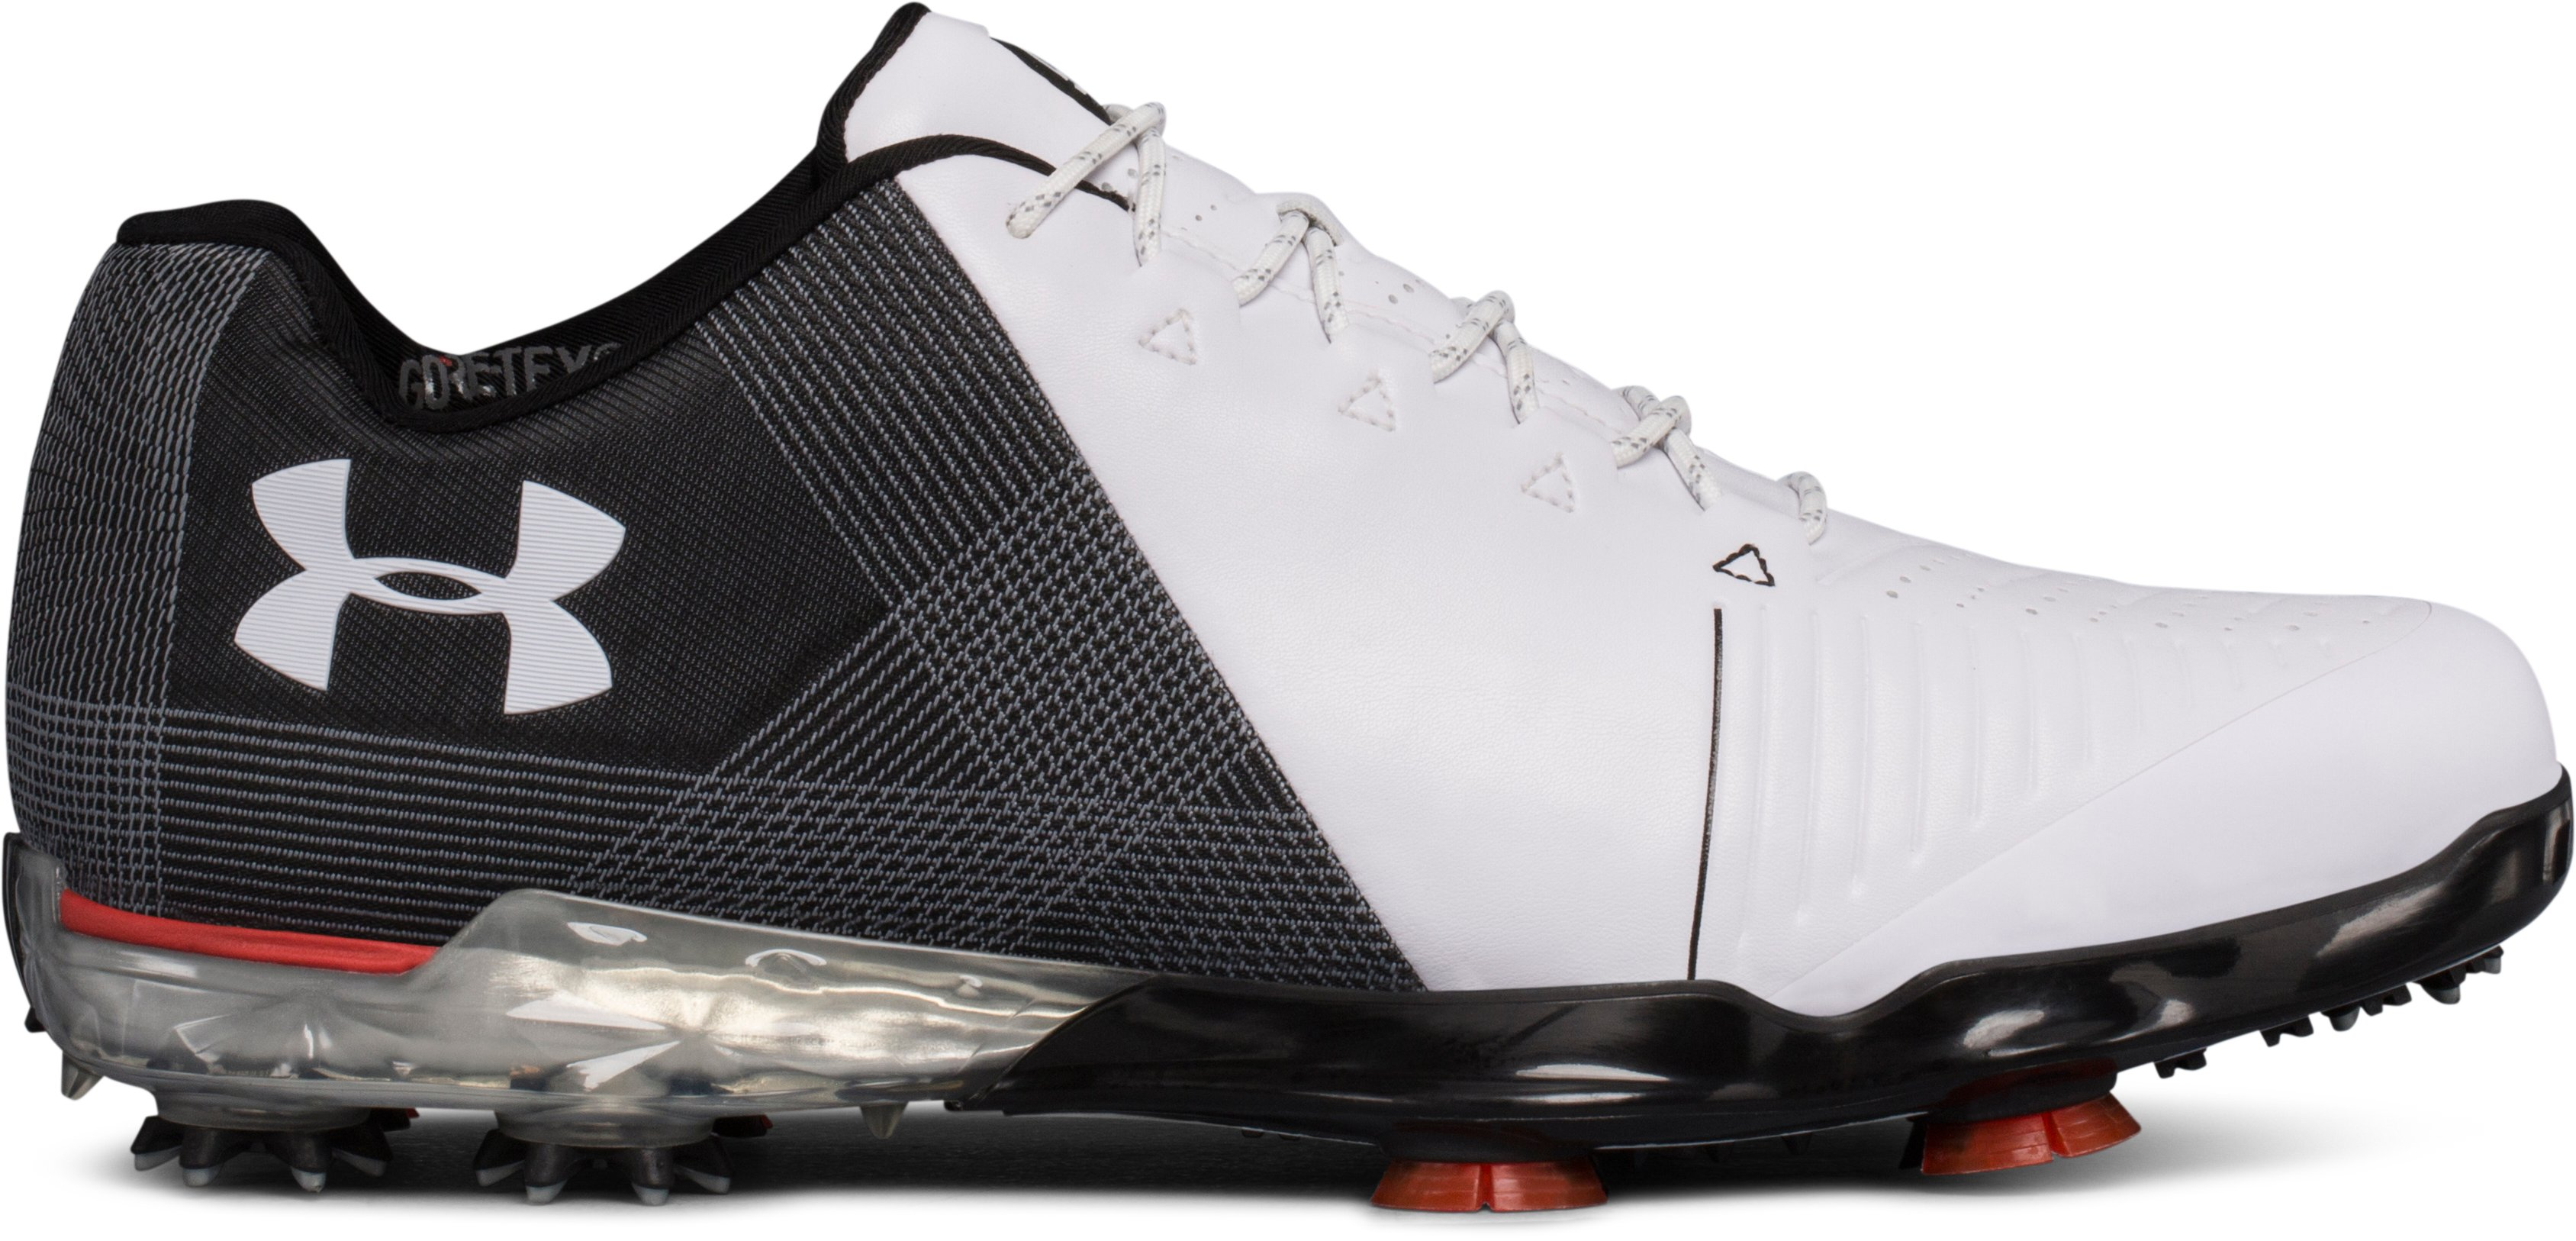 Men's UA Spieth 2 E Golf Shoes, 360 degree view